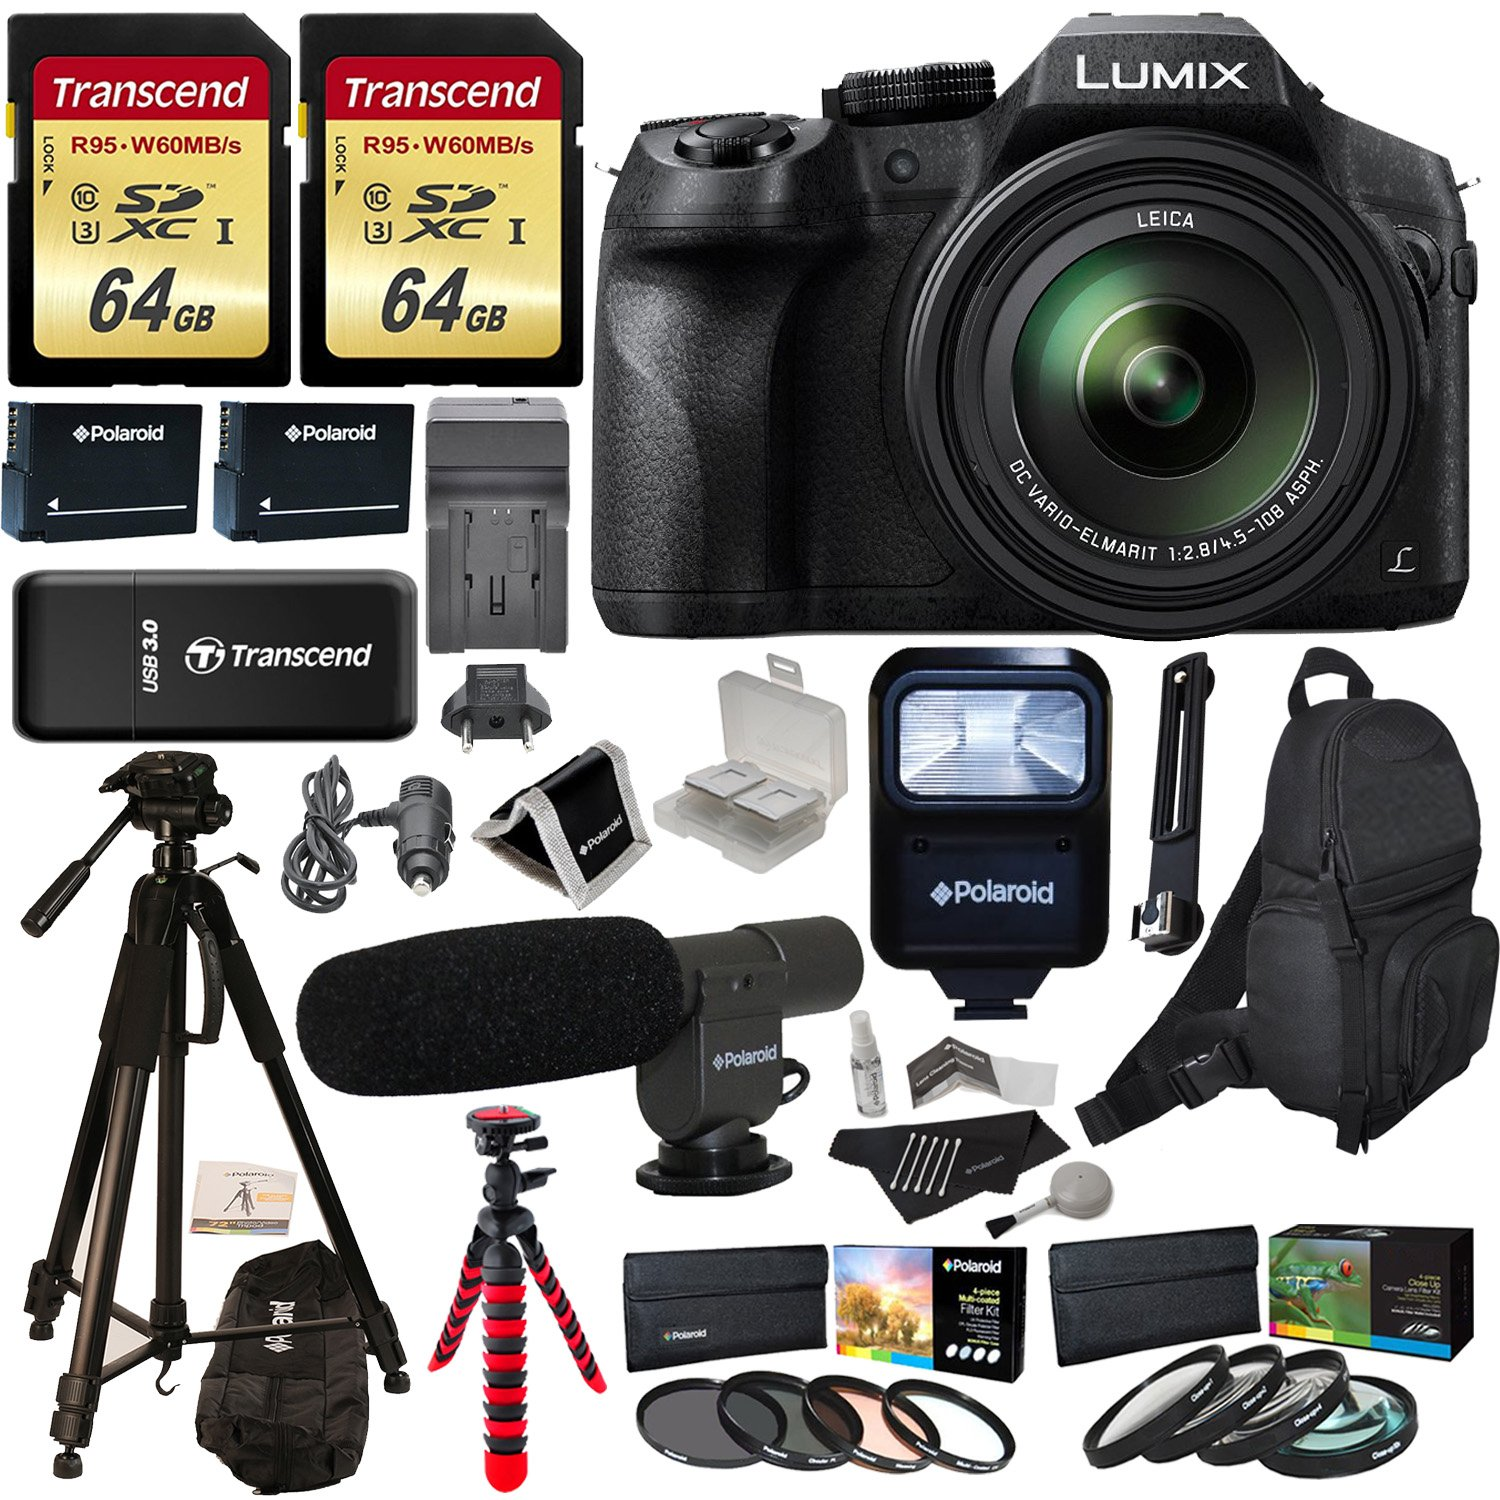 "Panasonic LUMIX DMC FZ300 4K Point and Shoot Camera with Leica DC Lens 24X Zoom + Polaroid Accessories + 2 64GB + 72 & 12"" Tripod + Flash + Bag + 2 Batteries + Charger + 2 Filters + Cleaning Kit +More"